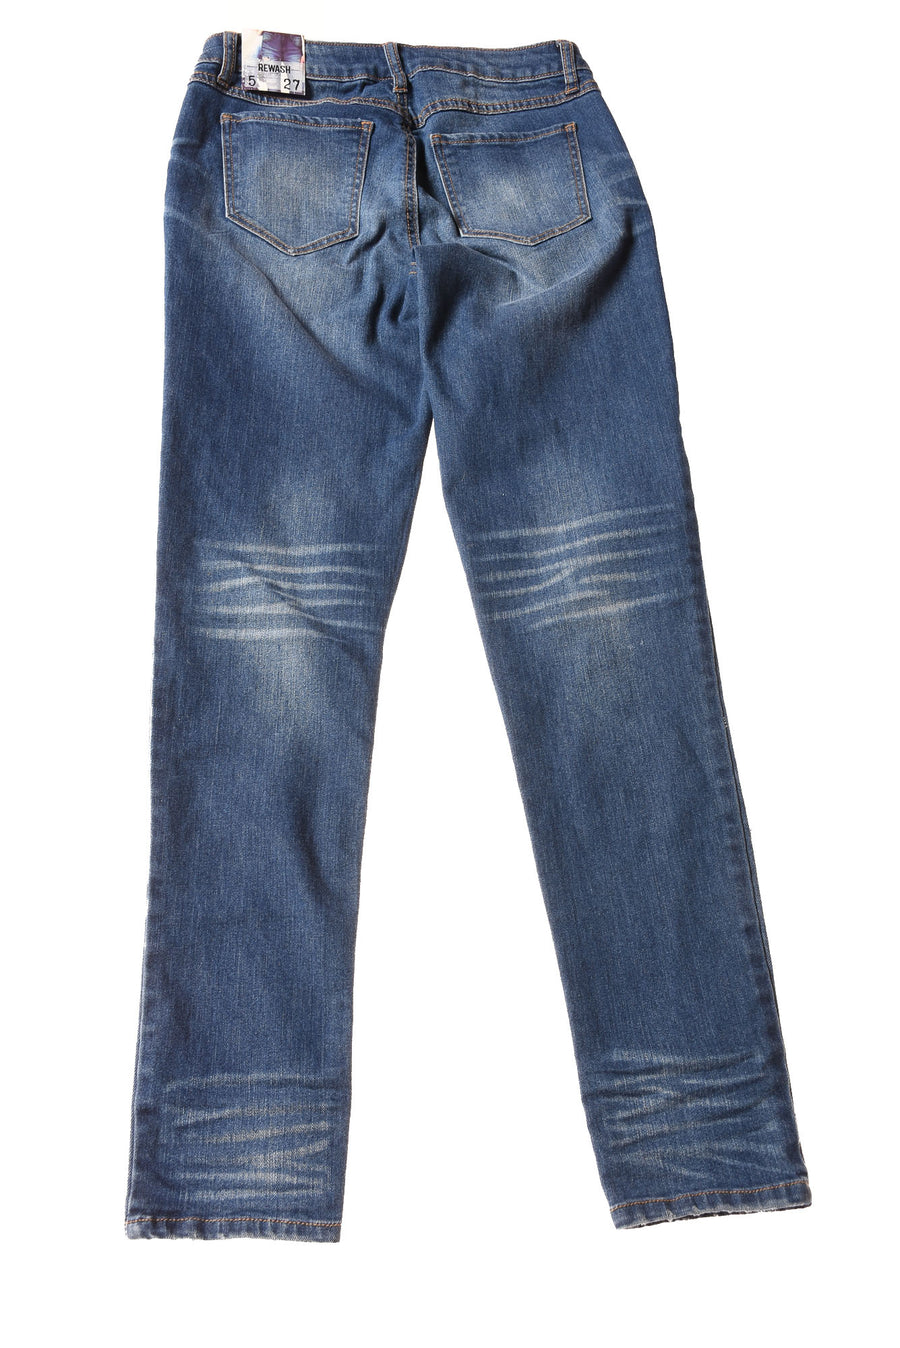 NEW Rewash Brand Women's Jeans 5 Blue